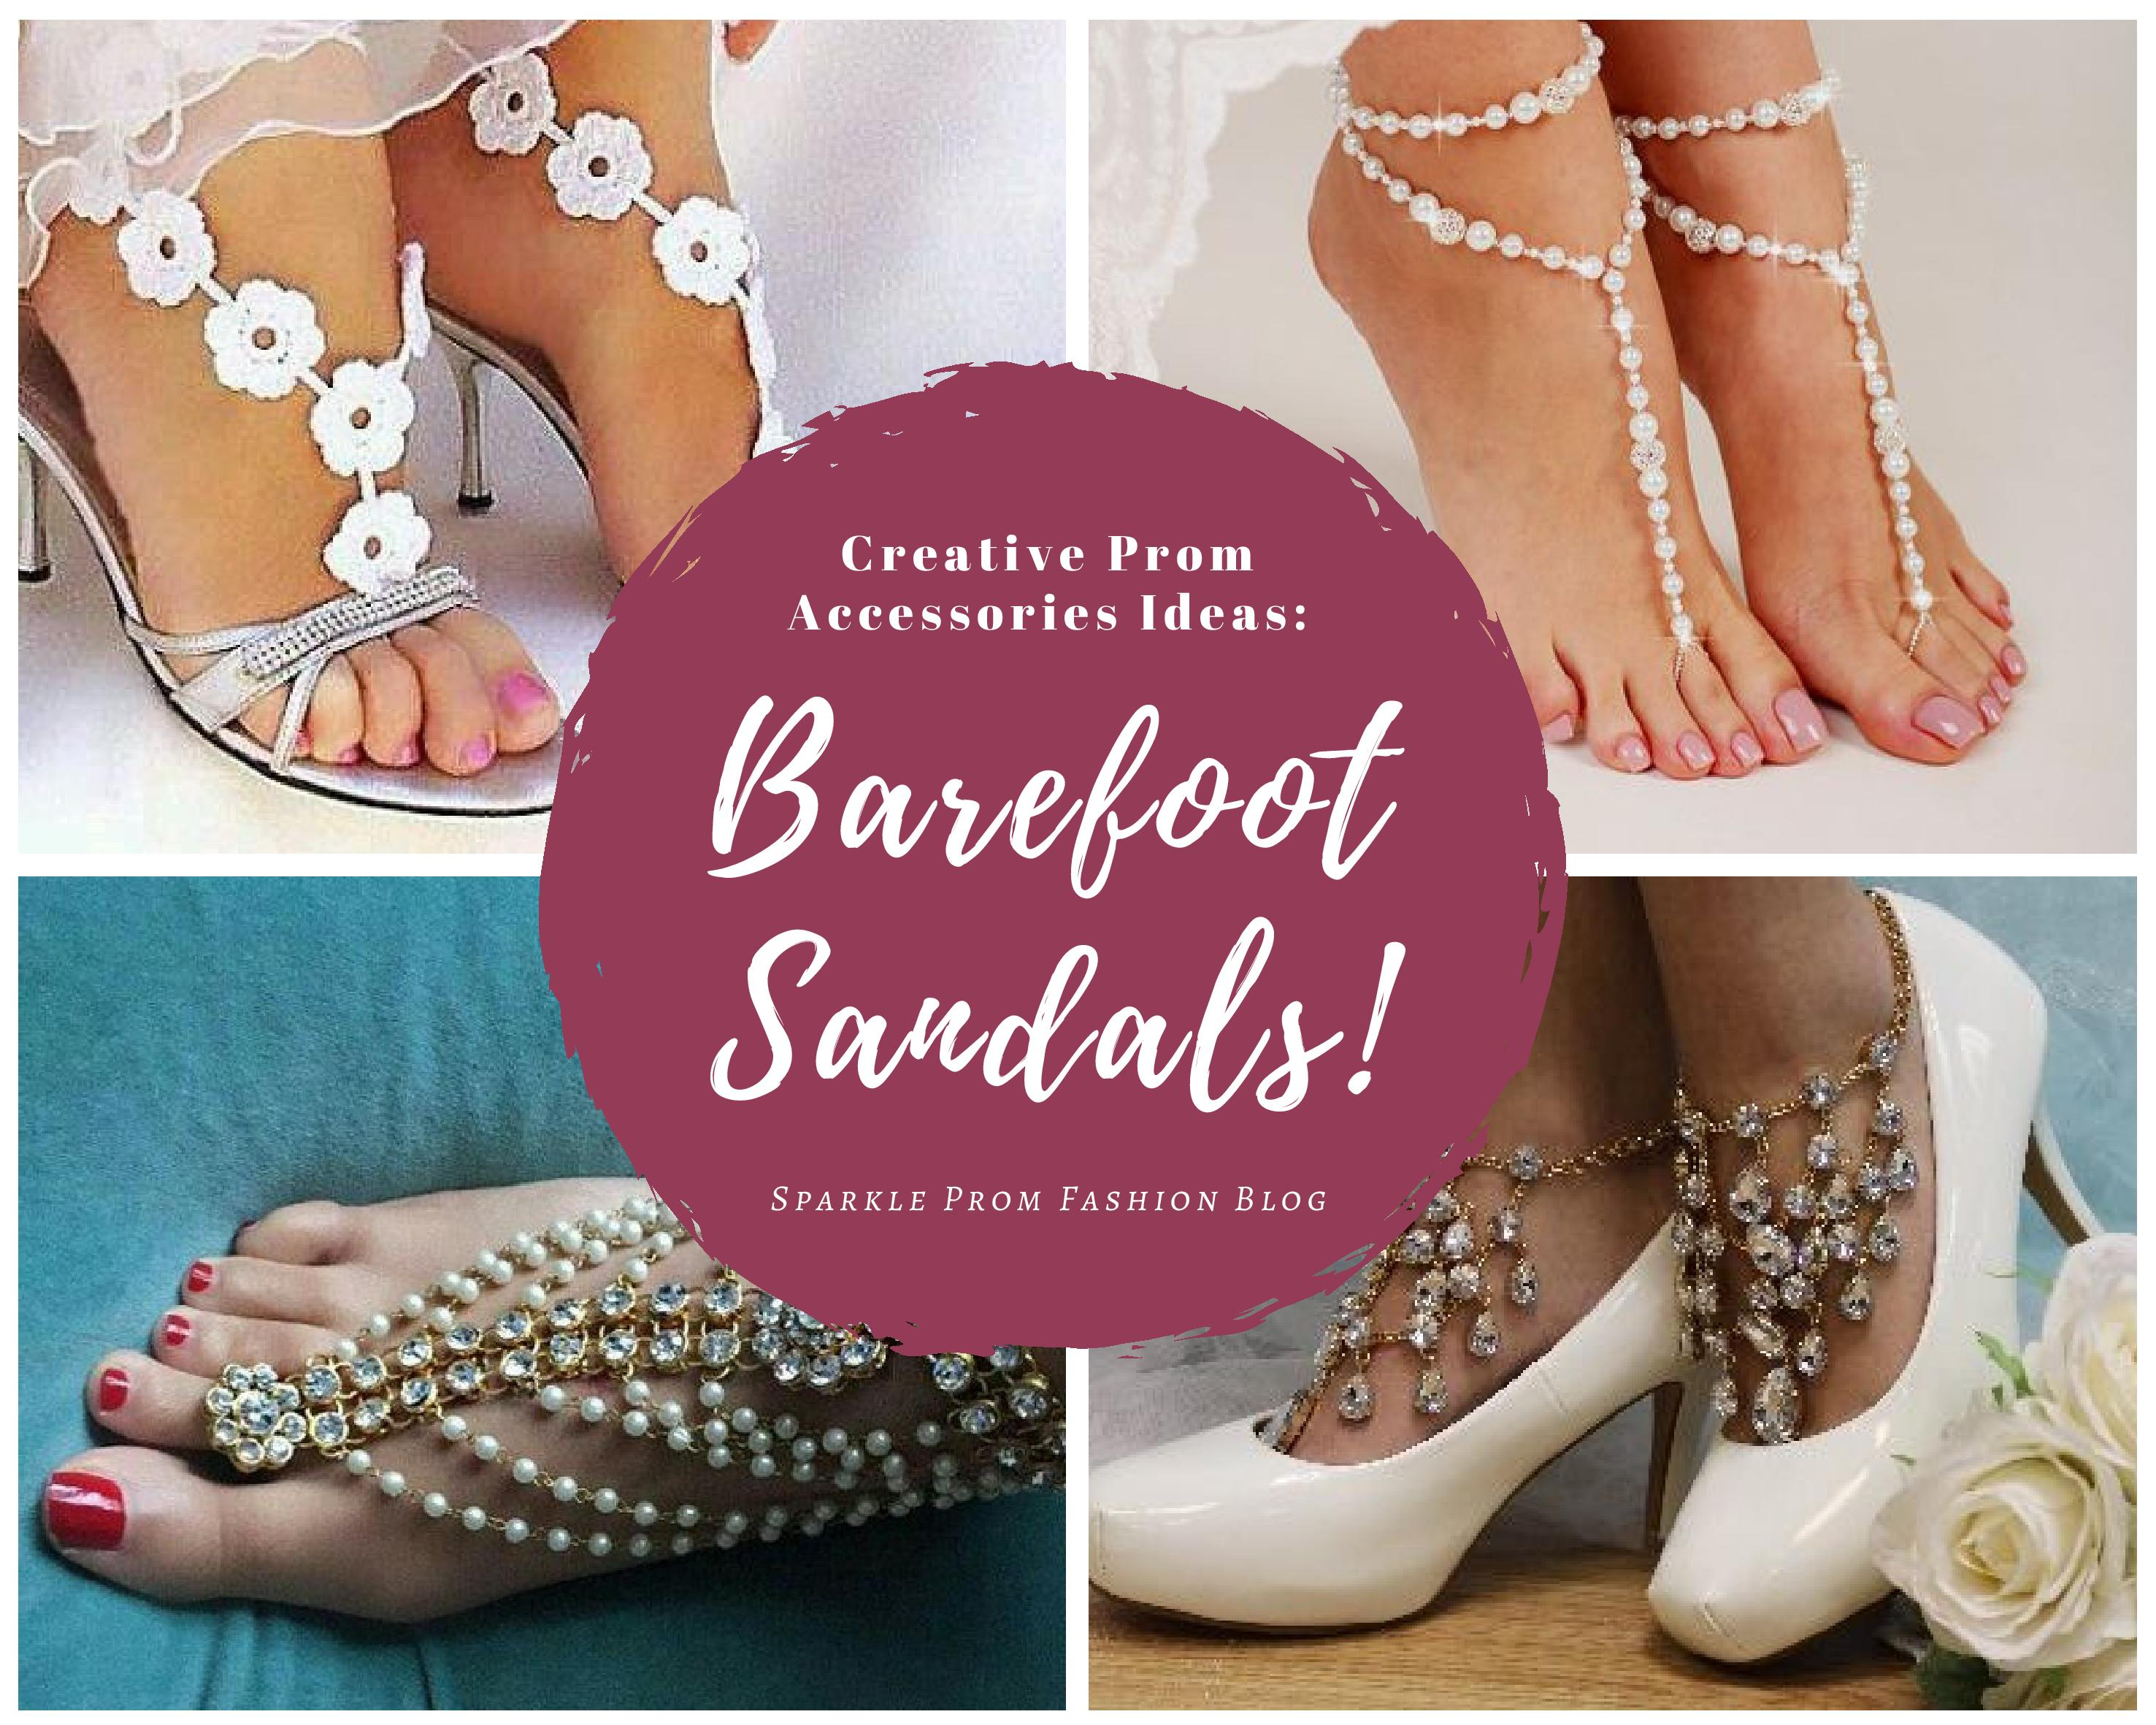 Best Prom Accessories Ideas: Barefoot Sandals! – Sparkle Prom Fashion Blog